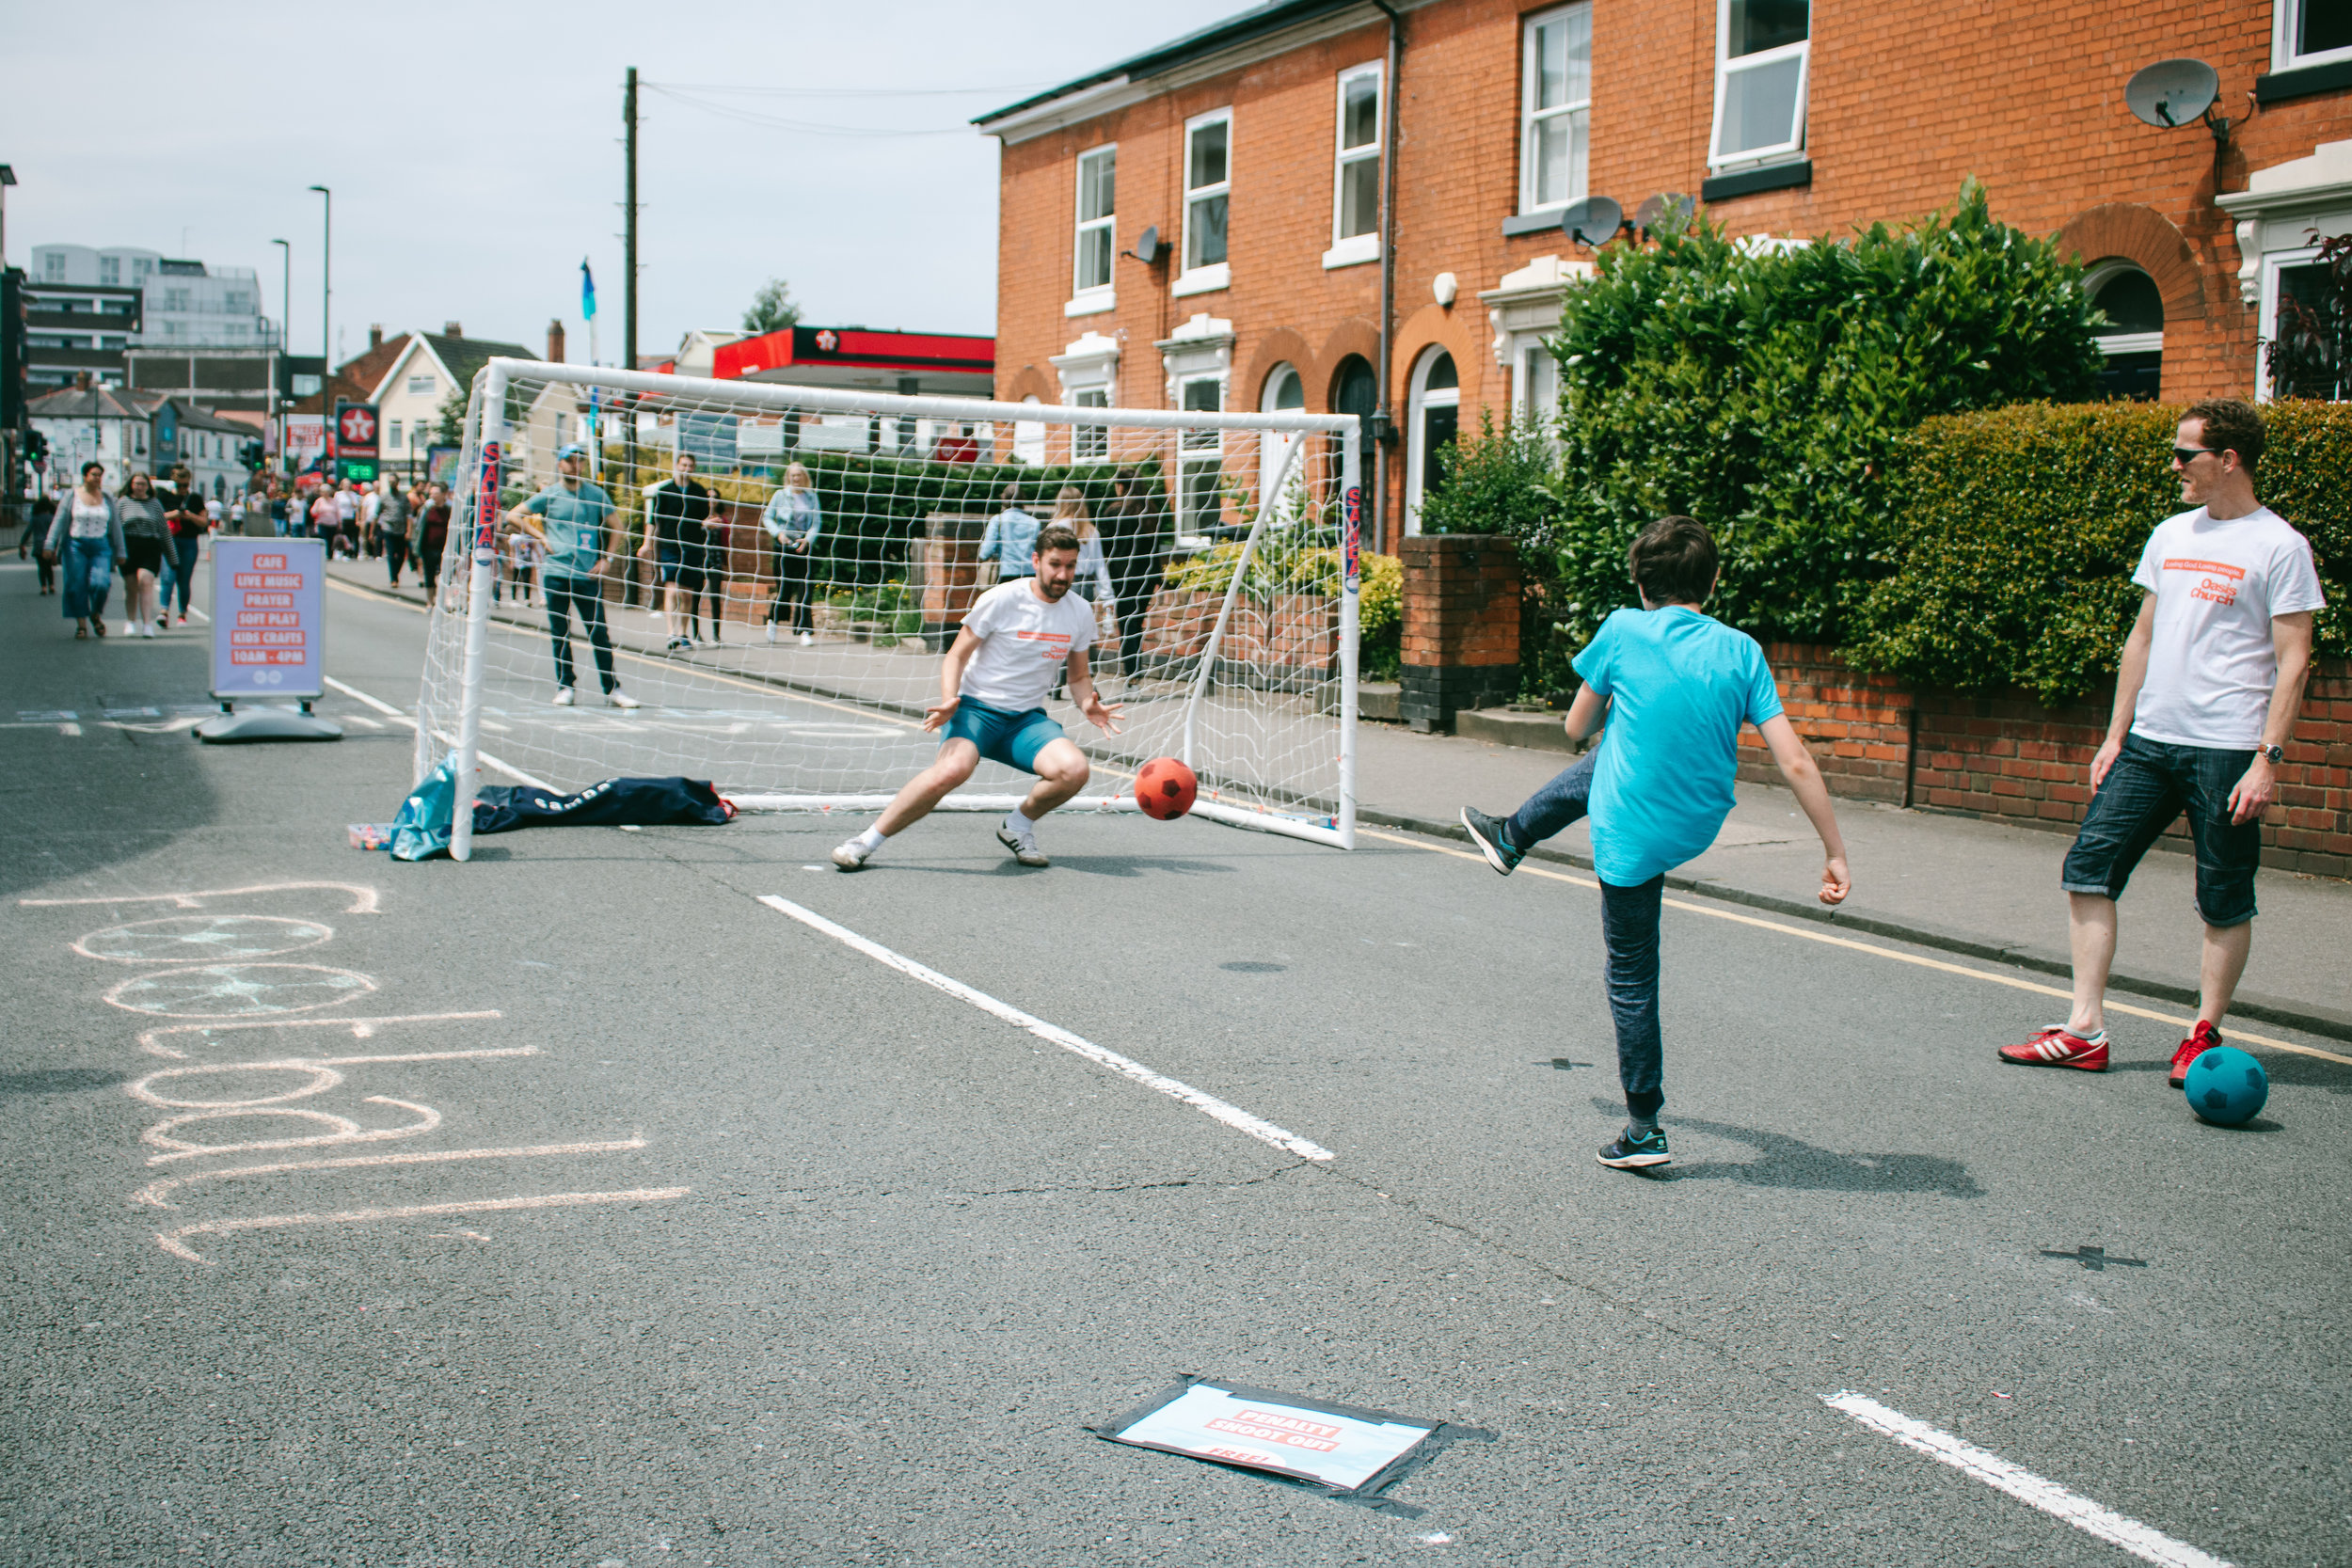 Oasis Church's games proved popular again